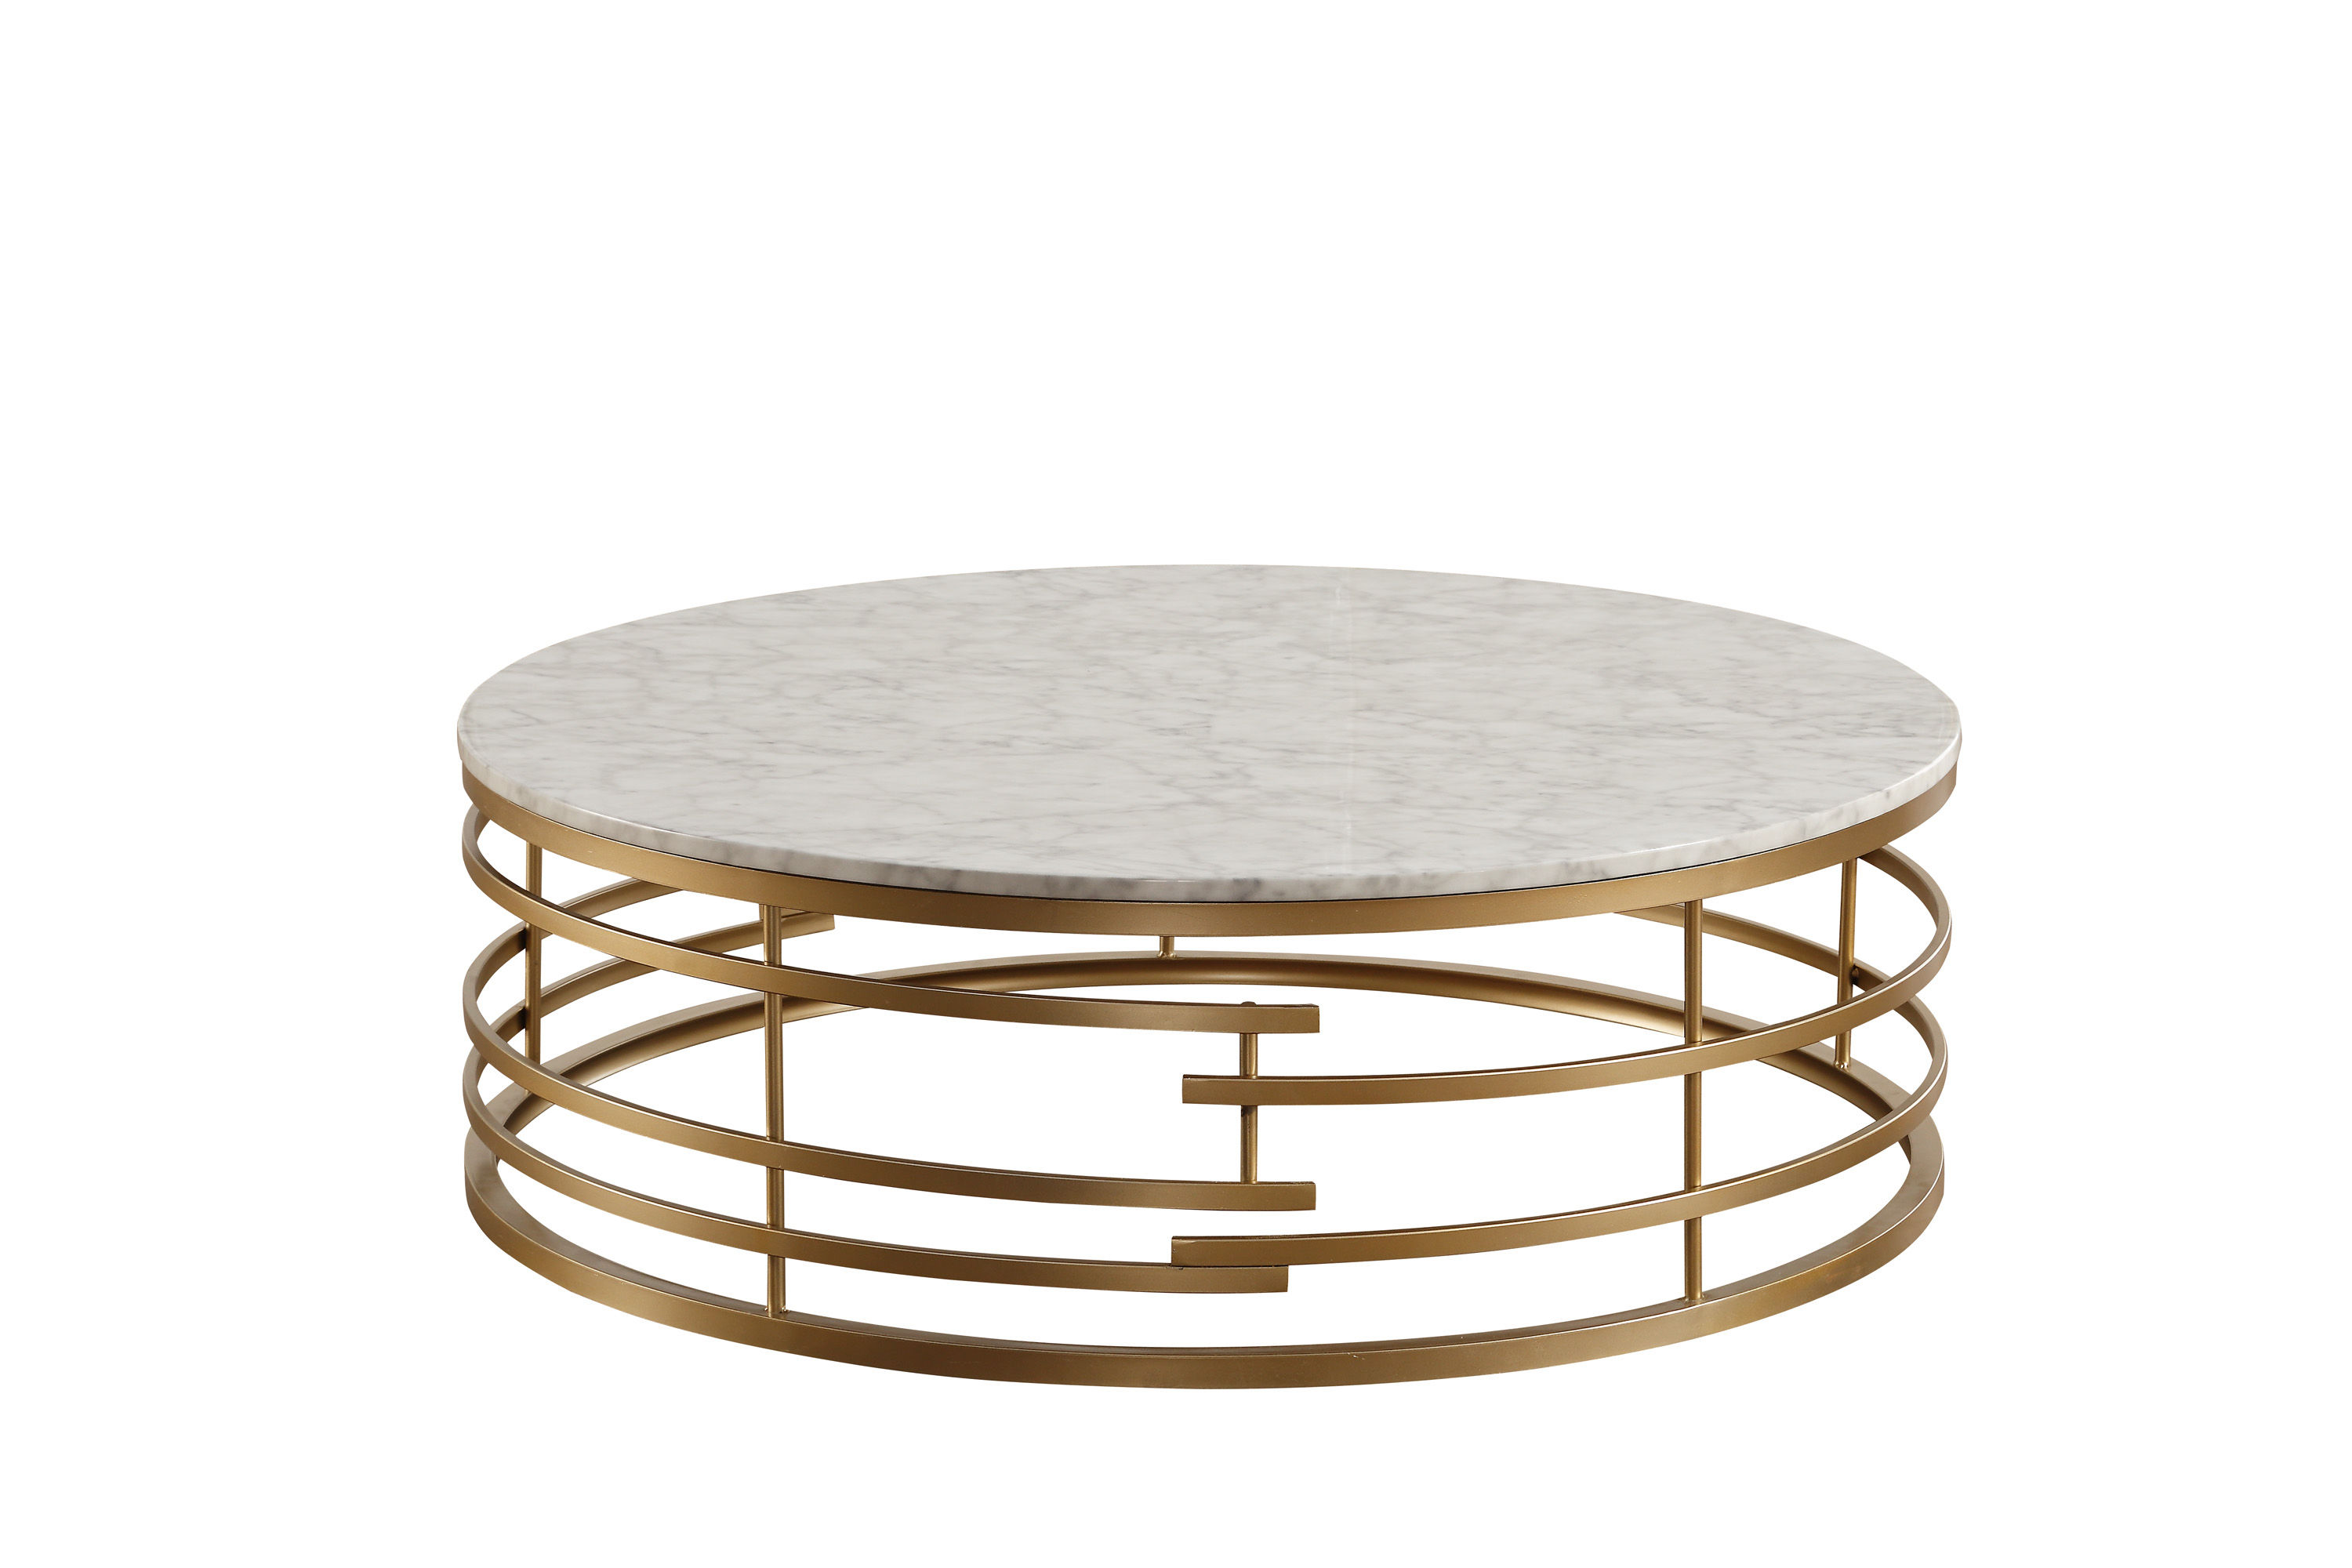 Home Elegance Brassica Gold Round Coffee Table The Classy Home